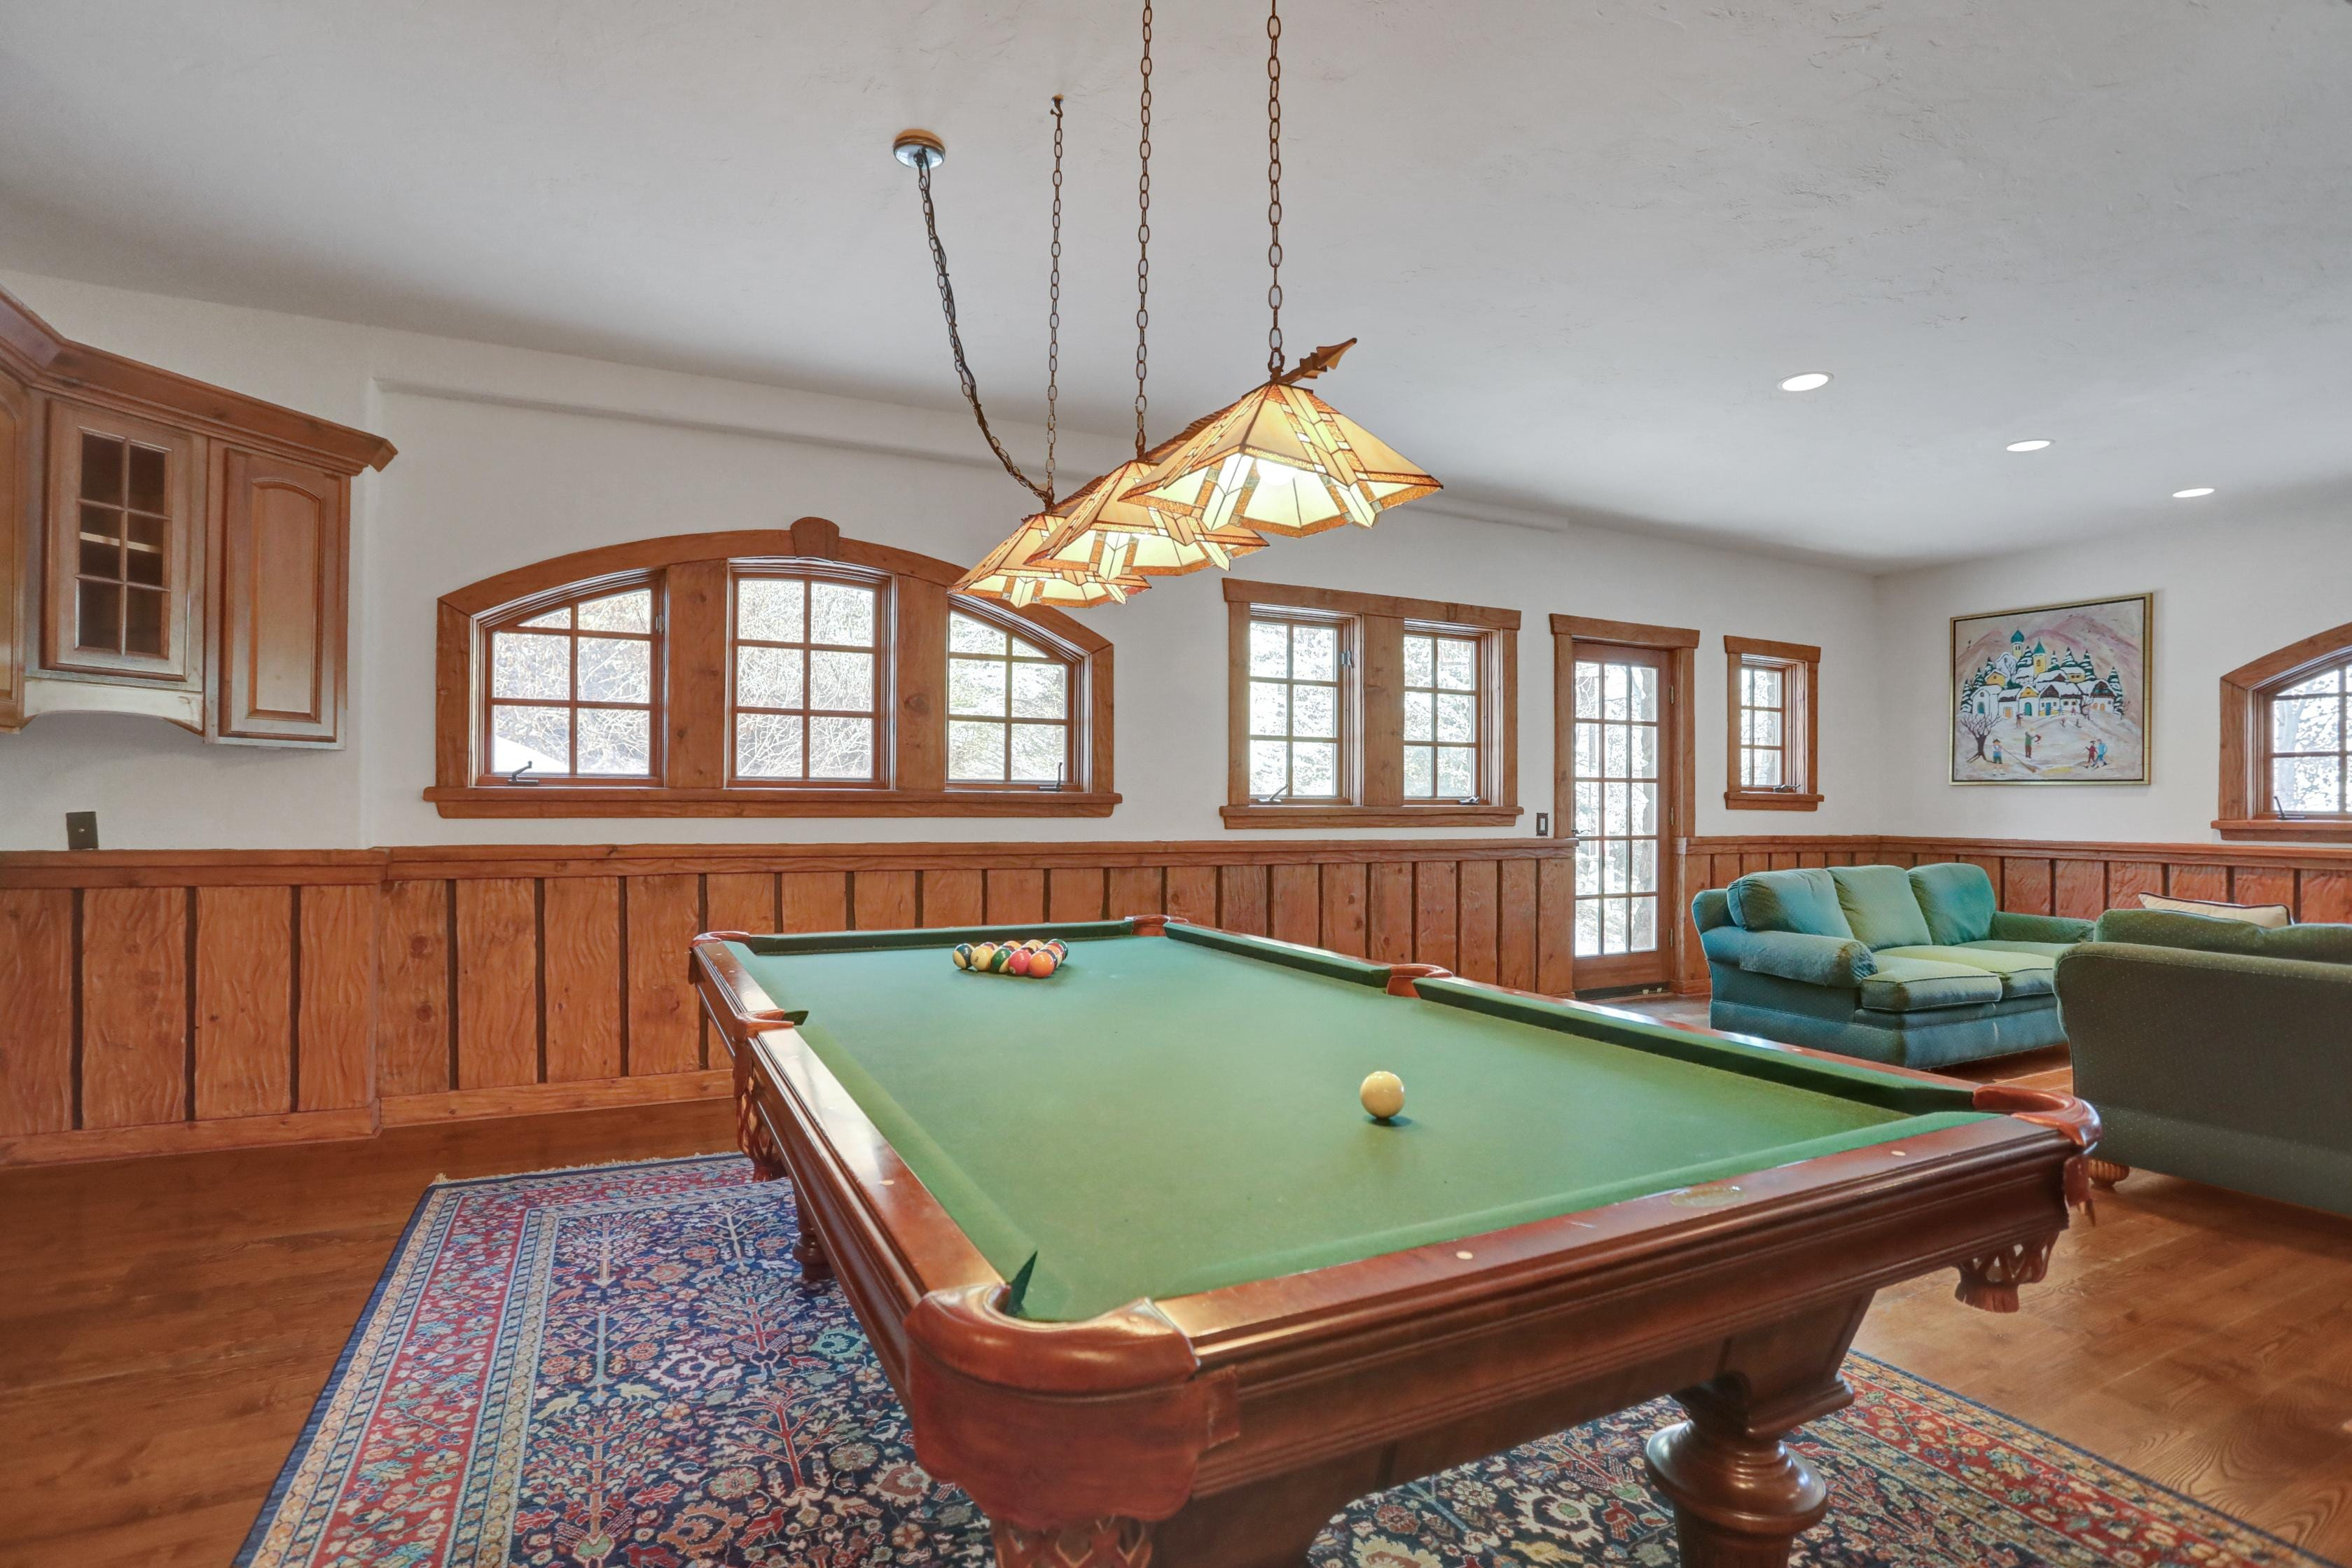 Rack up the pool table in the game room.